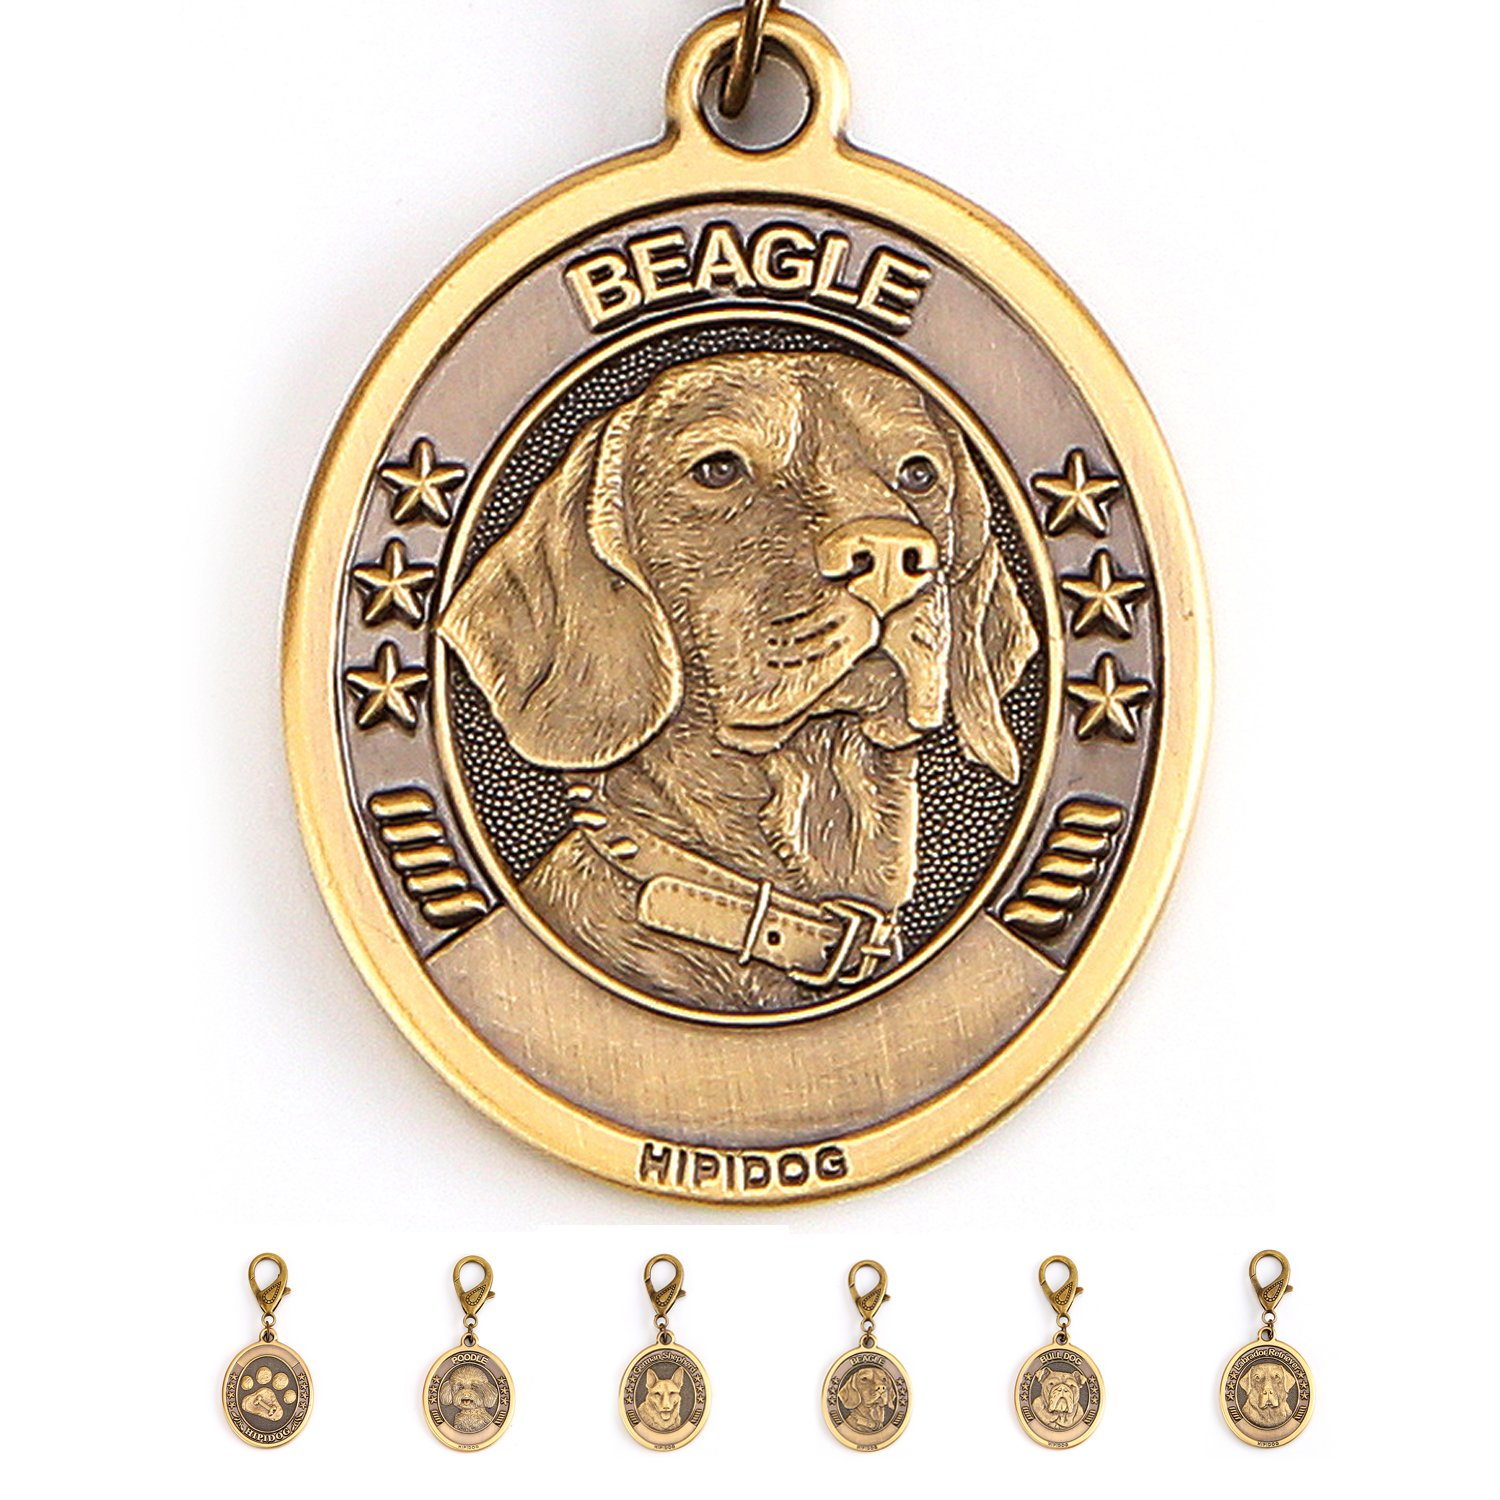 Personalized Dog Tags for Dogs Engraved, Premium Brass Custom Pet ID Tags for Small Medium Large Dog Breeds (Beagle)